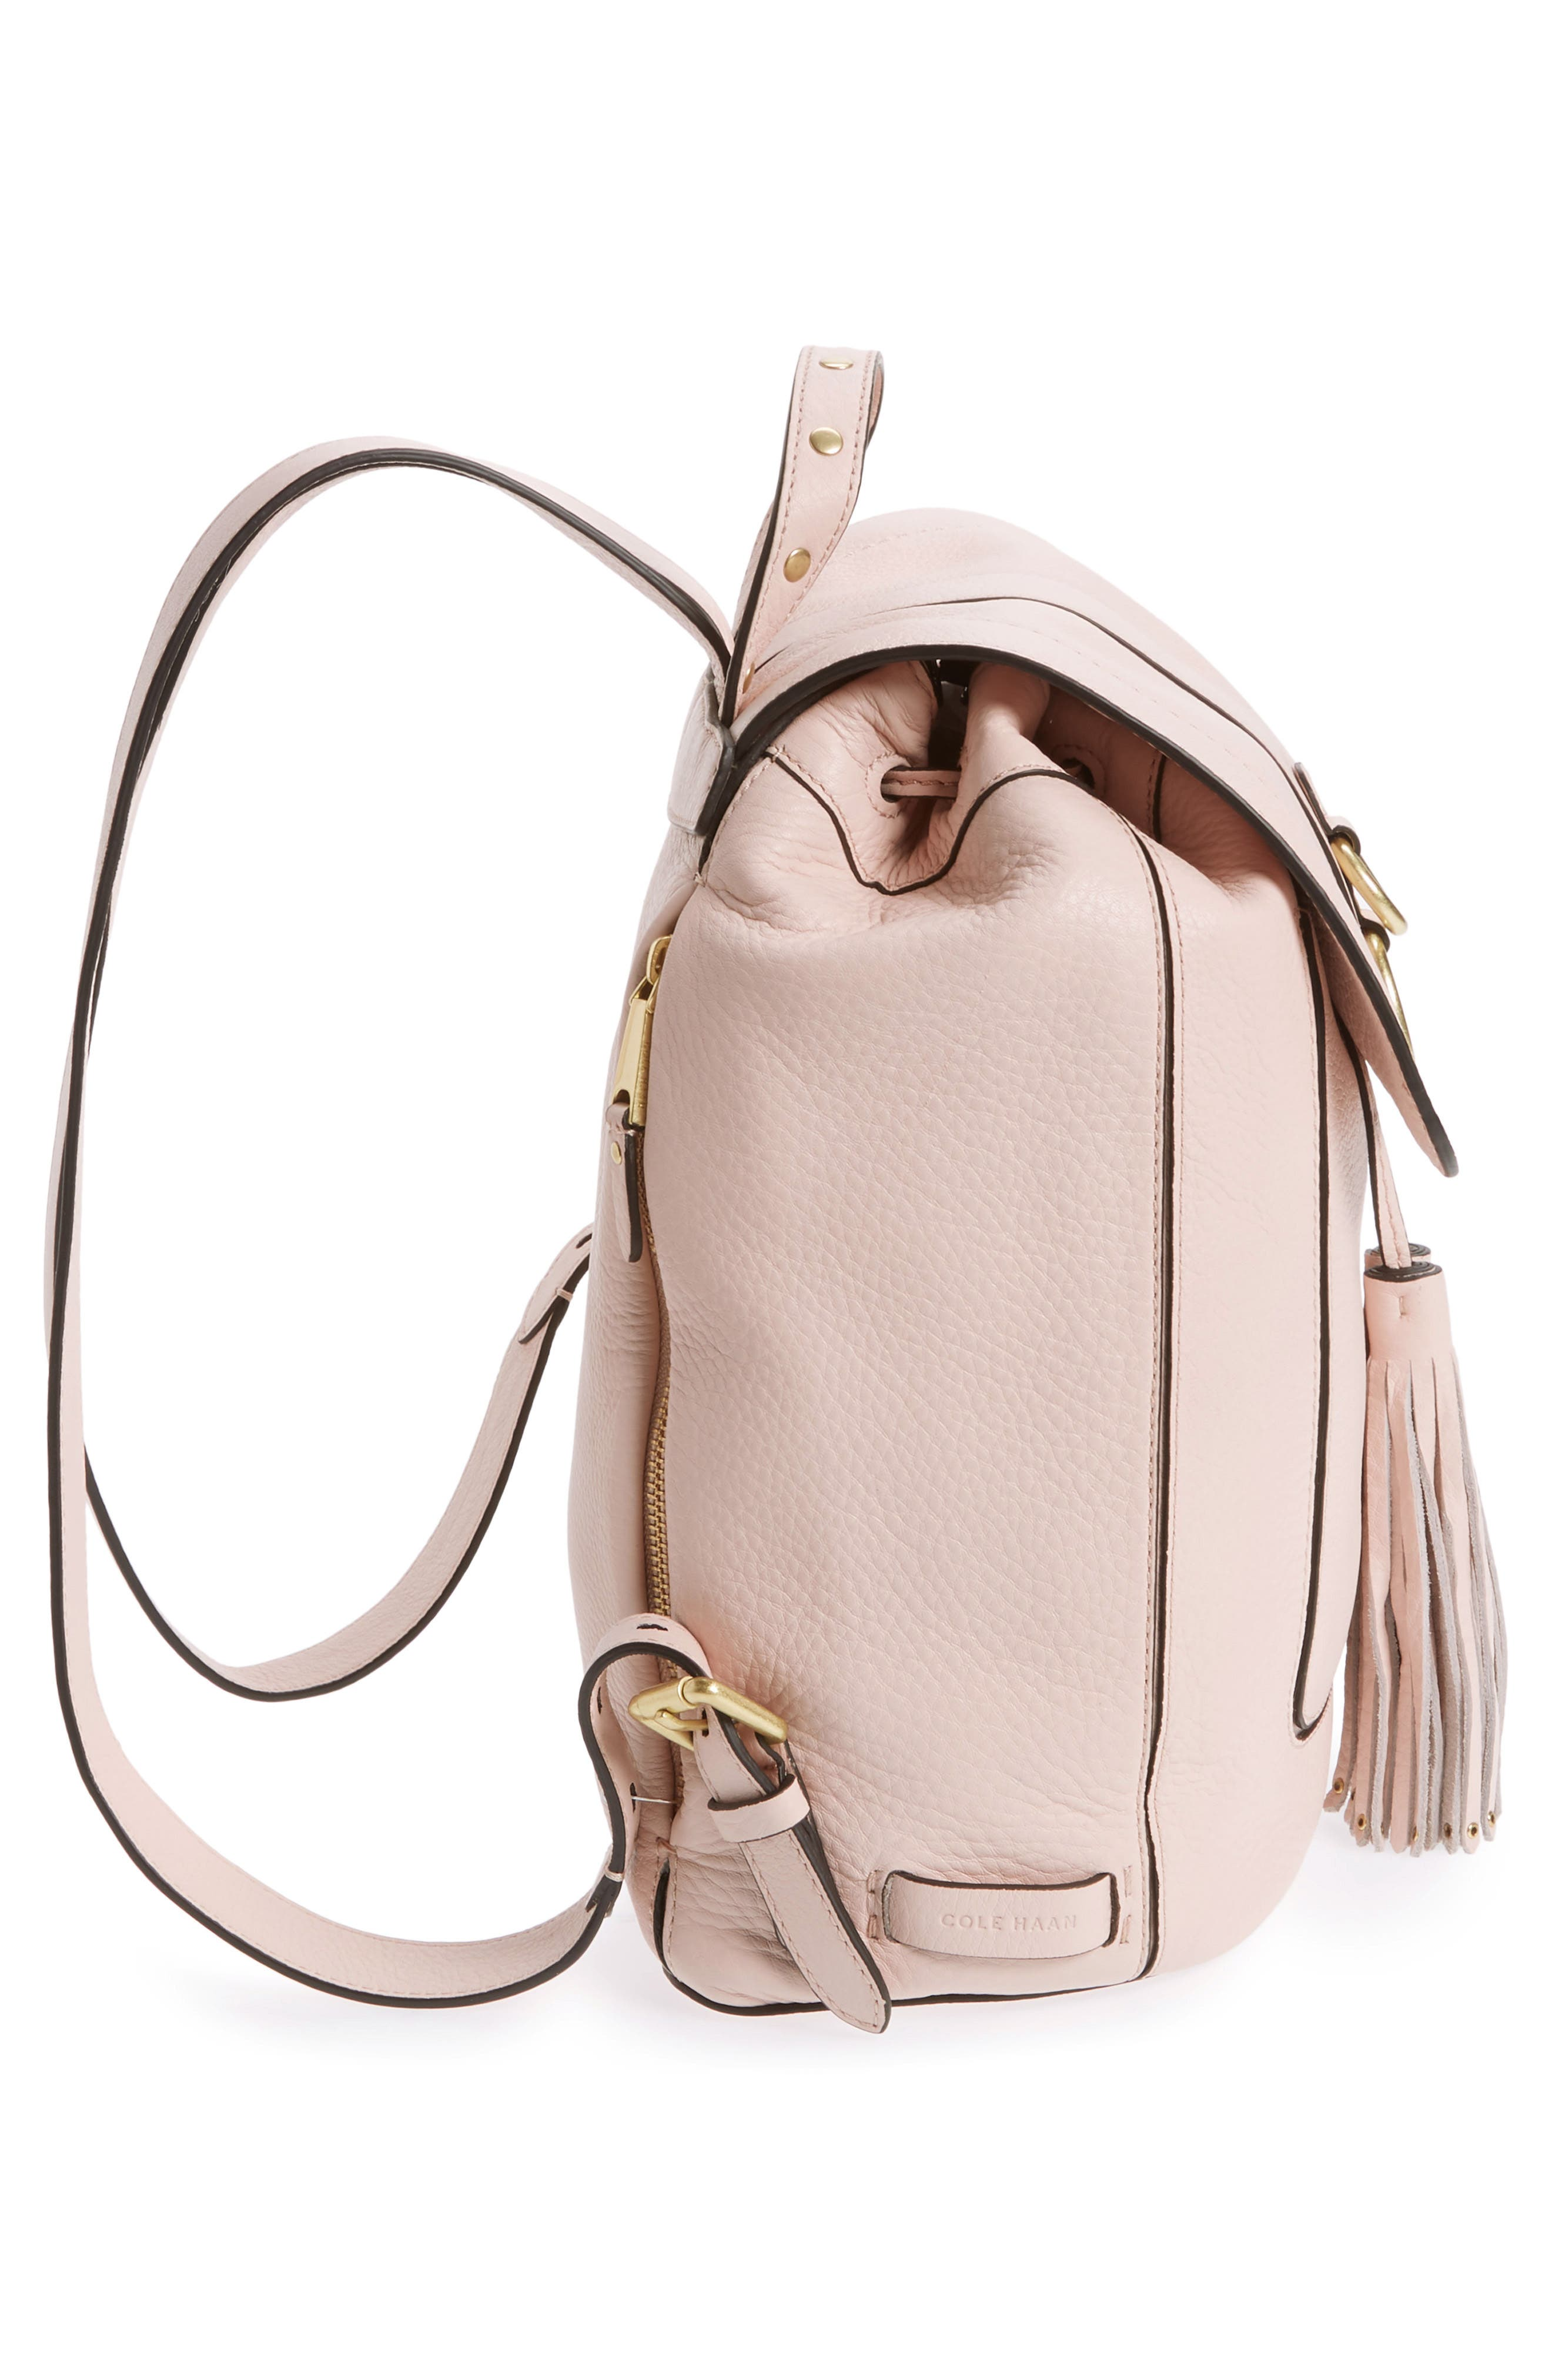 Cassidy RFID Pebbled Leather Backpack,                             Alternate thumbnail 5, color,                             Peach Blush